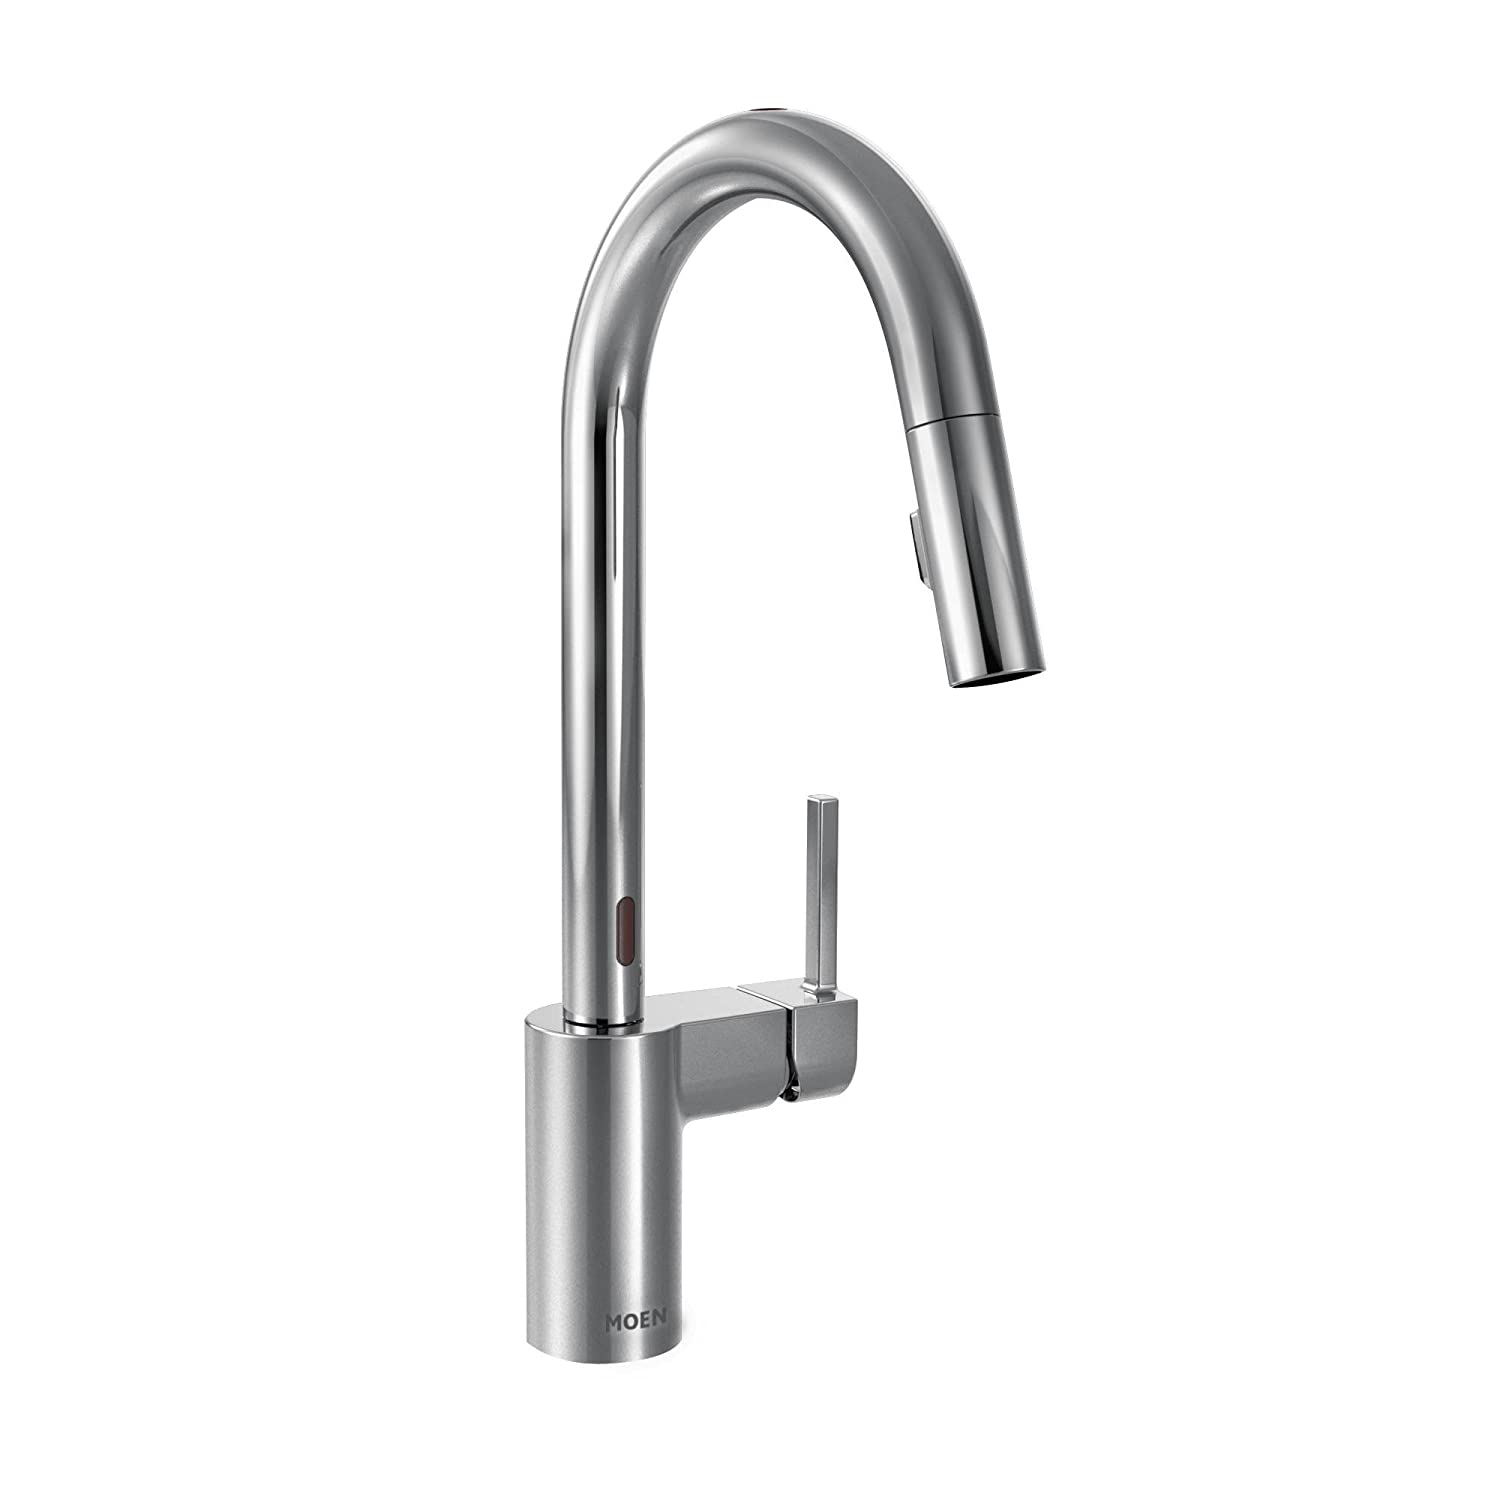 in parkfield of perfect amazon products widespread motorcycle bathroom com faucets handle crest faucet lovely